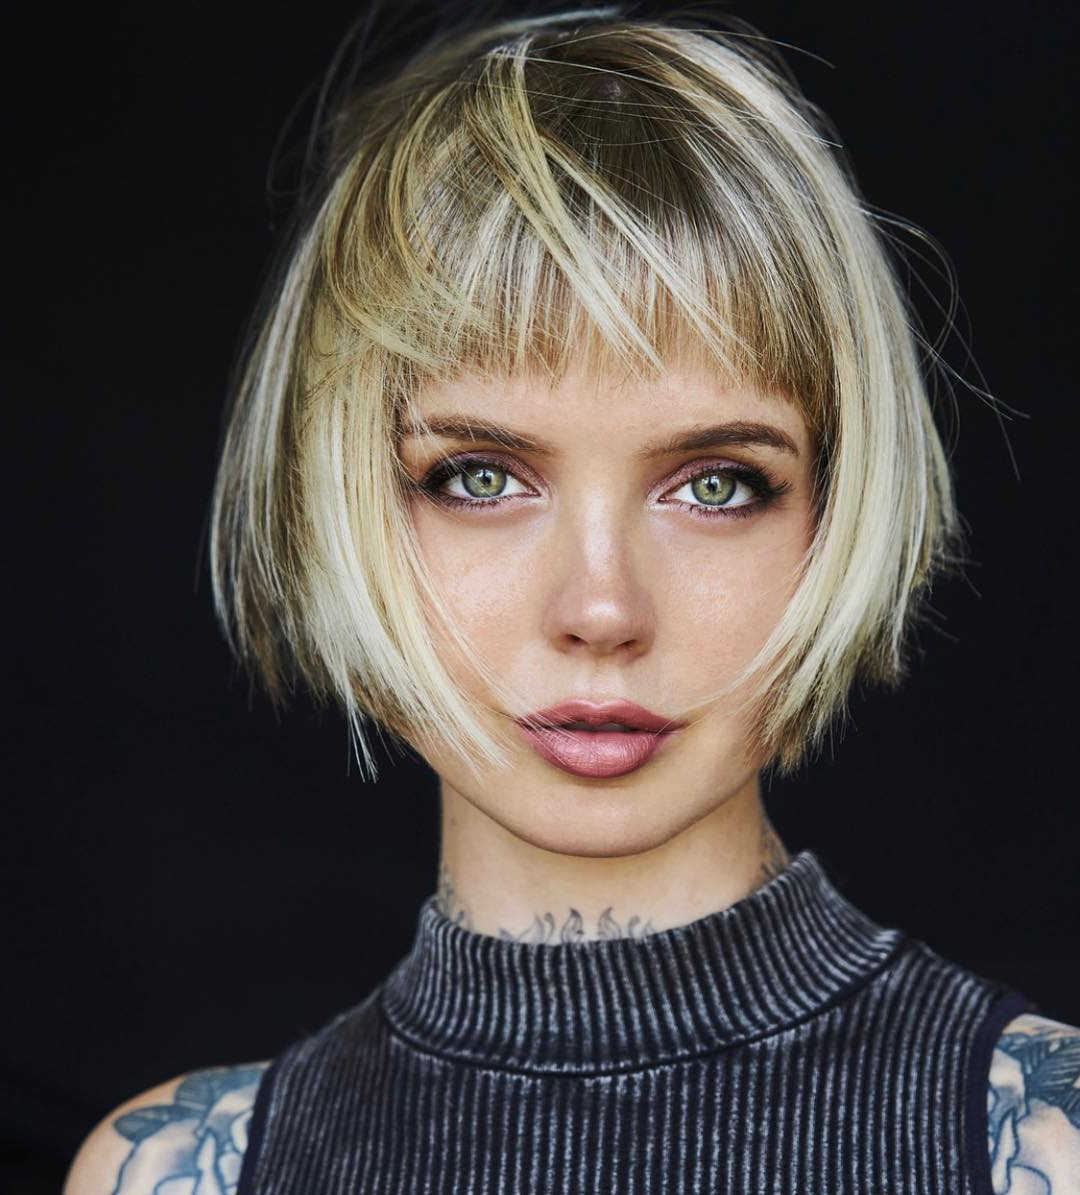 10 Best Short Hairstyles For Thick Hair – Short Haircuts For In Most Up To Date Shattered Choppy Bangs Pixie Haircuts (View 4 of 20)